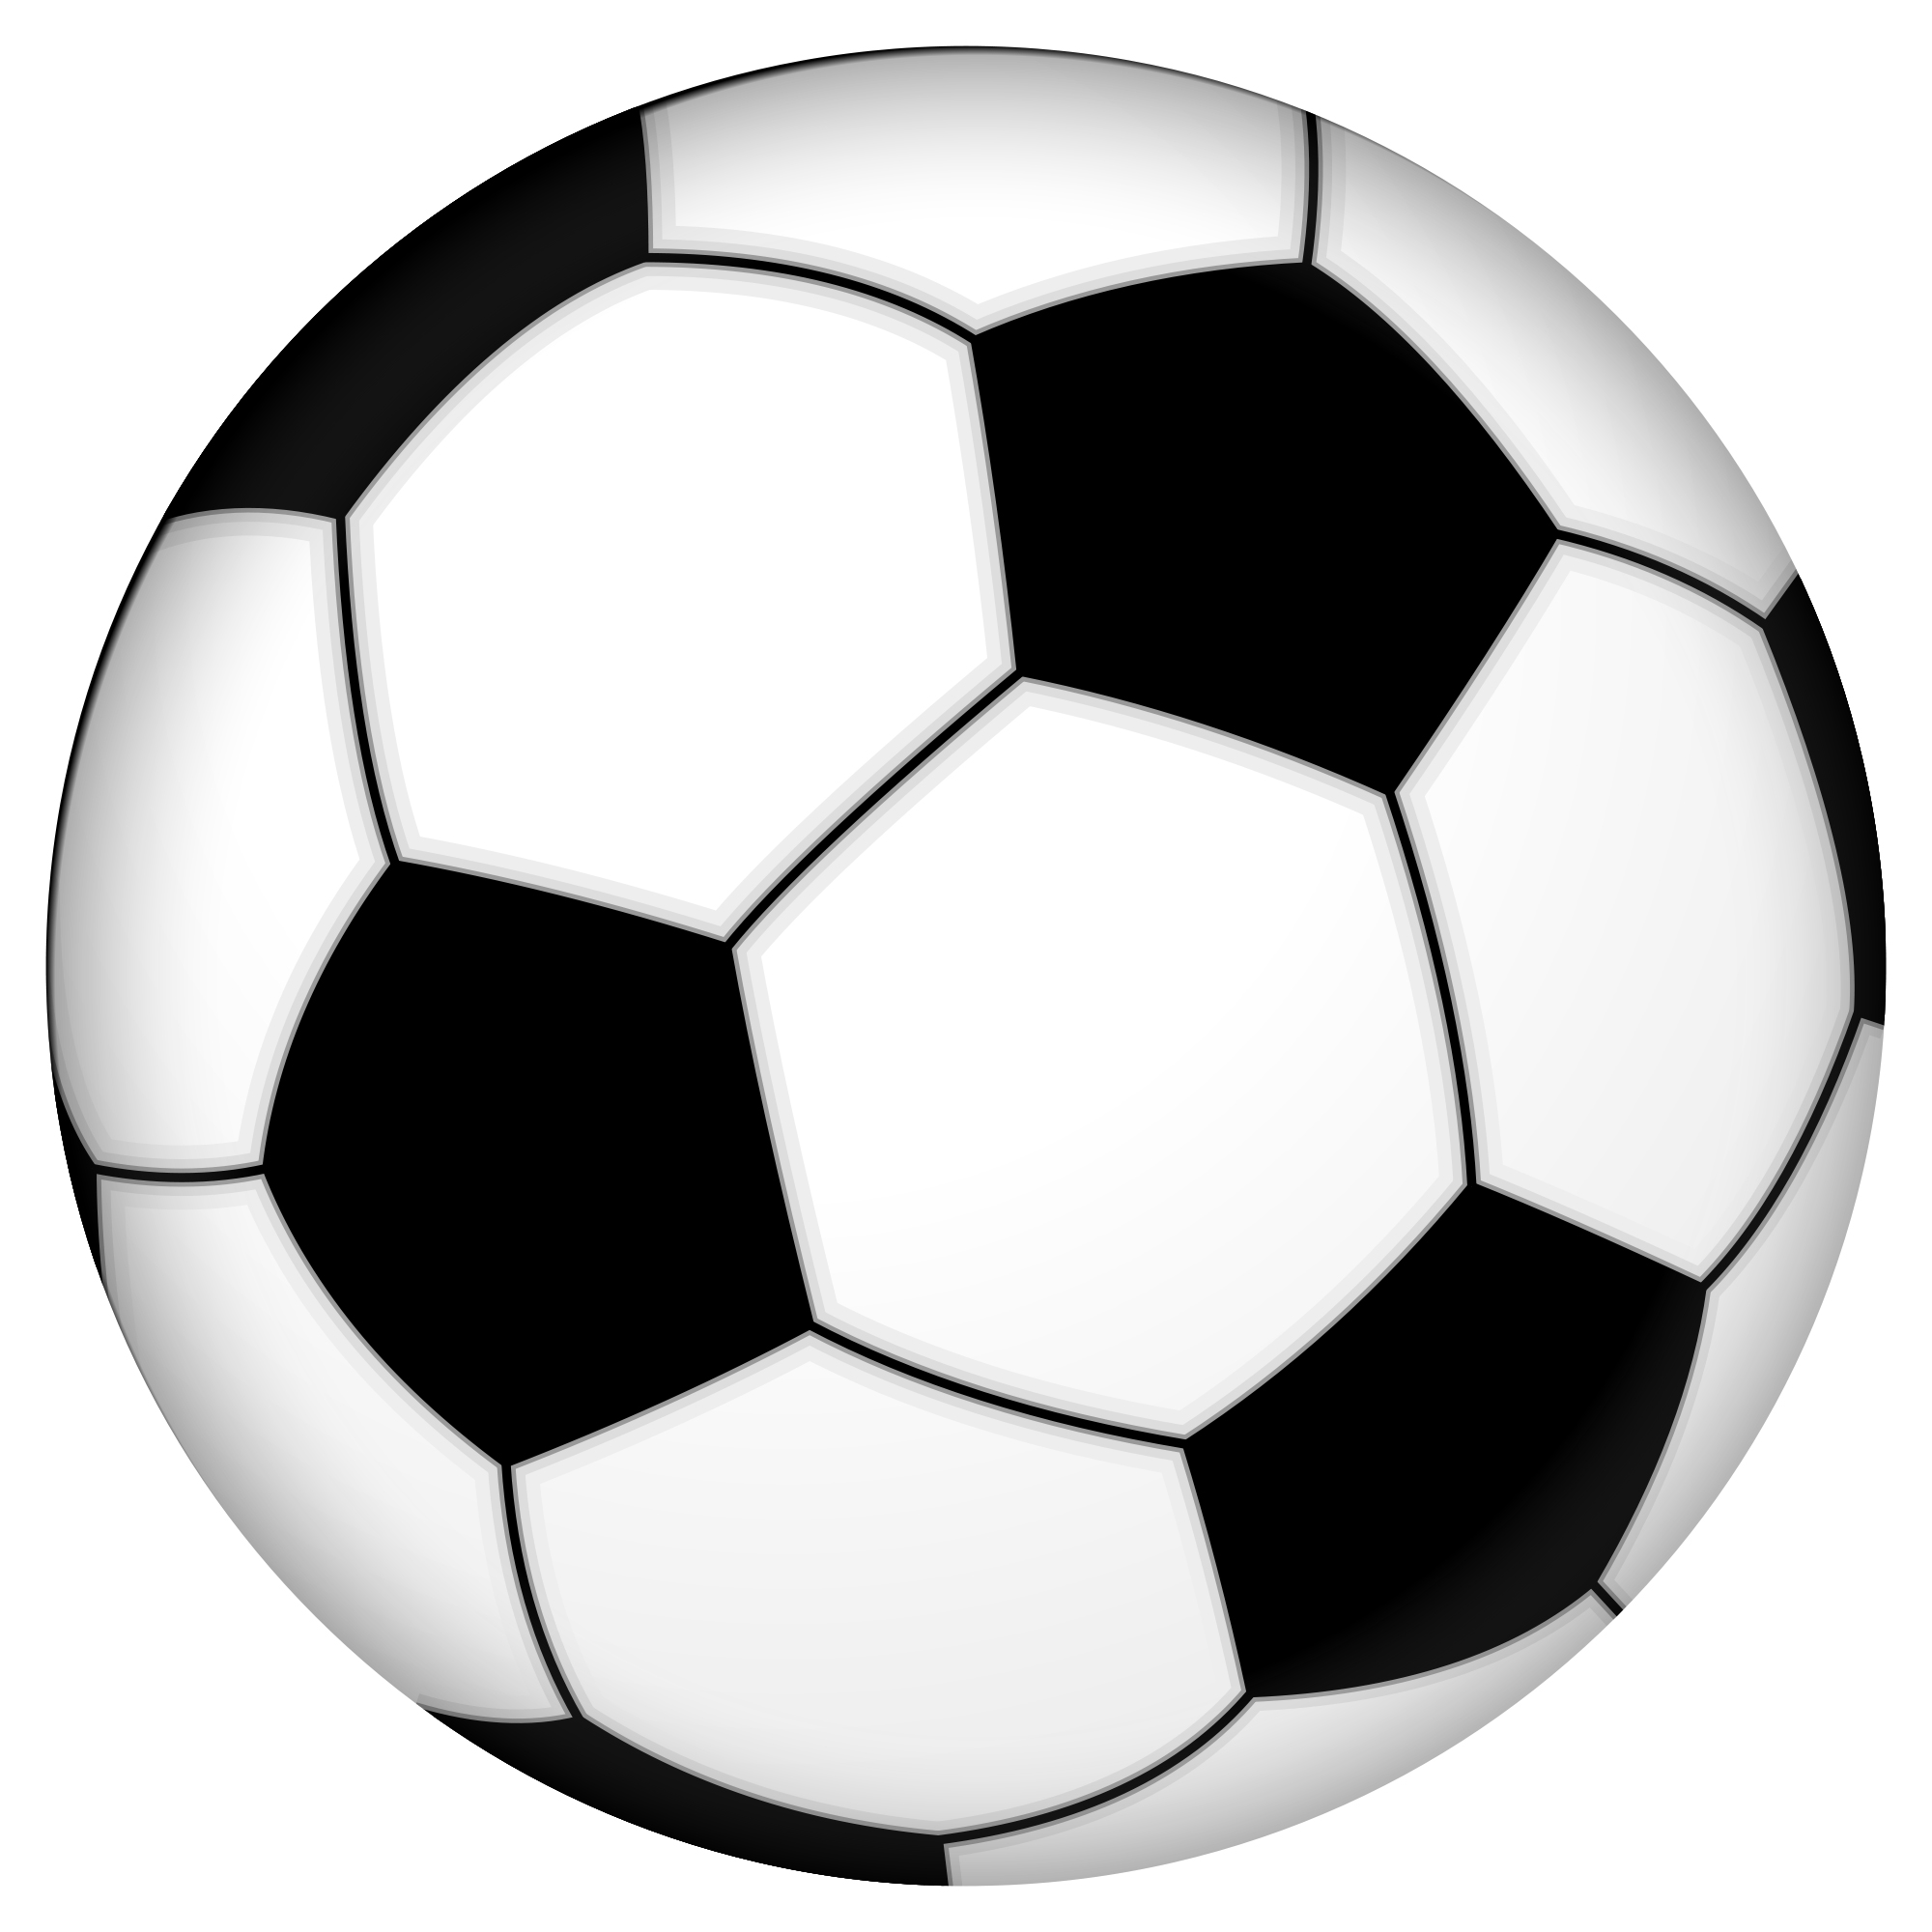 Sphere clipart sports equipment Pdclipart Ball free Clip Kicking